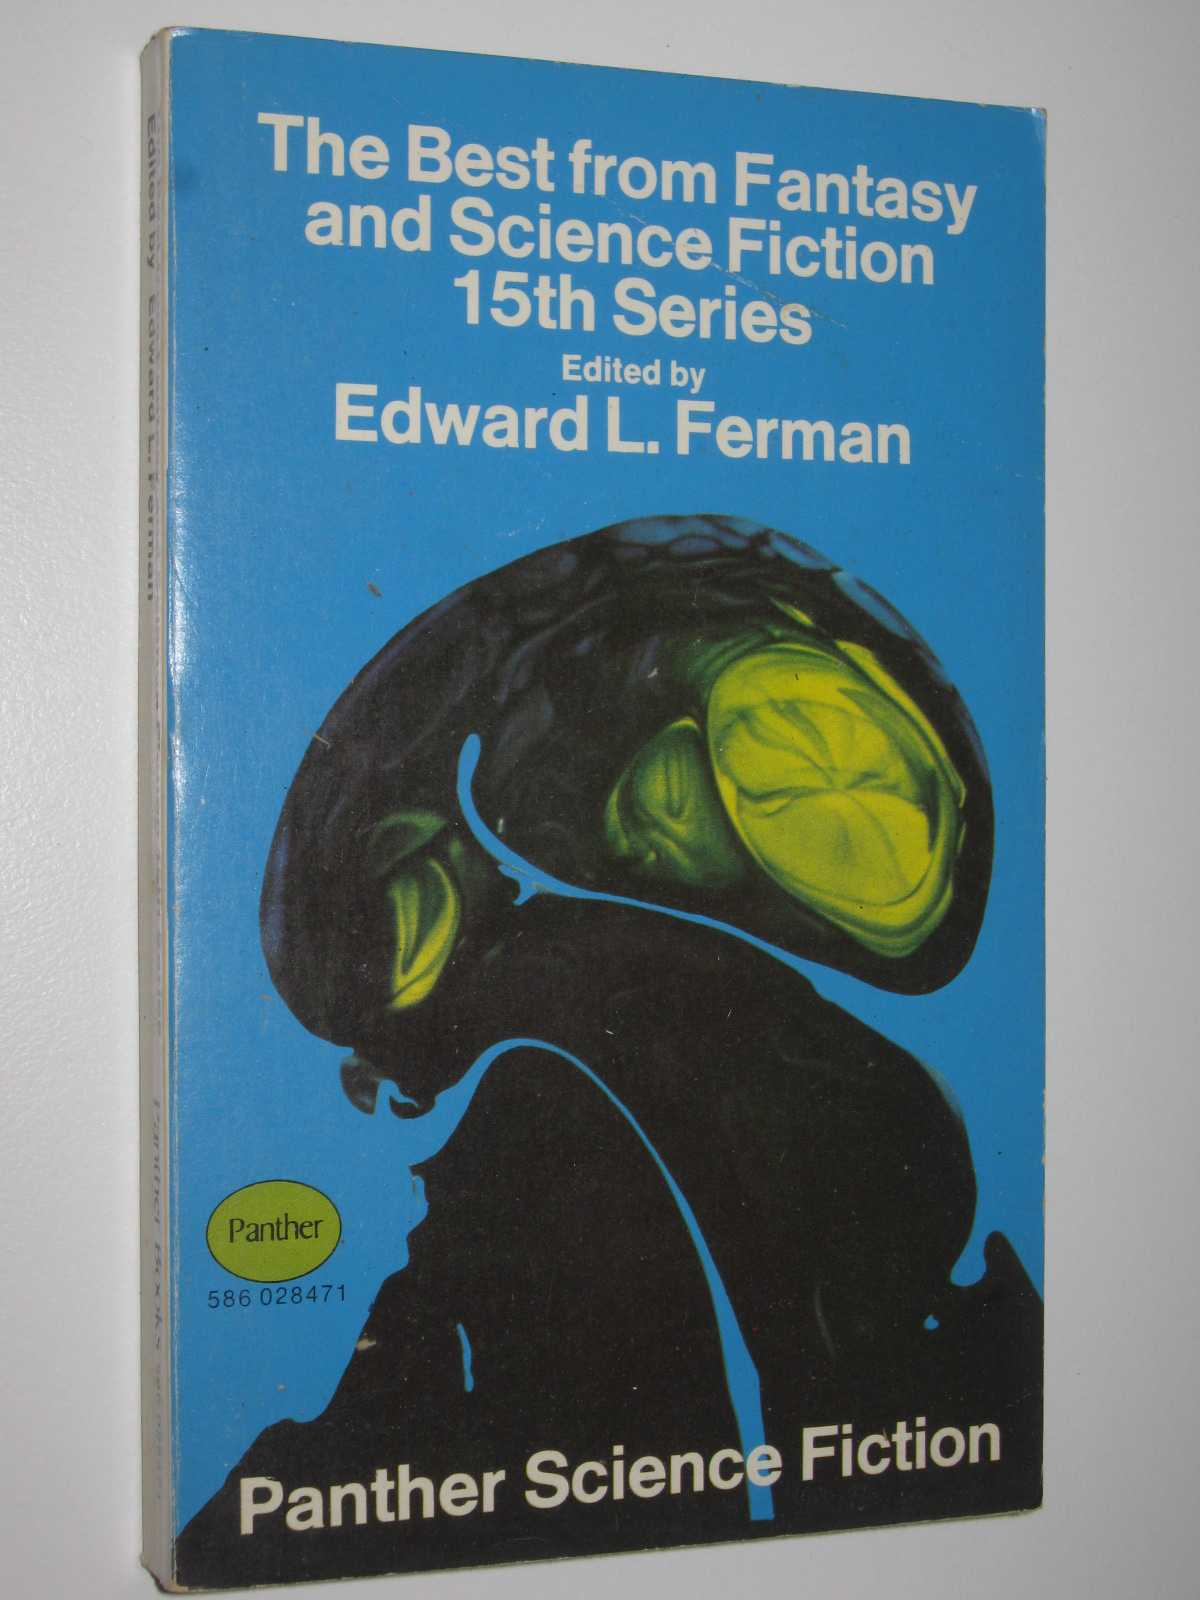 The Best from Fantasy and Science Fiction Number 15, Ferman, Edward L. (edited)